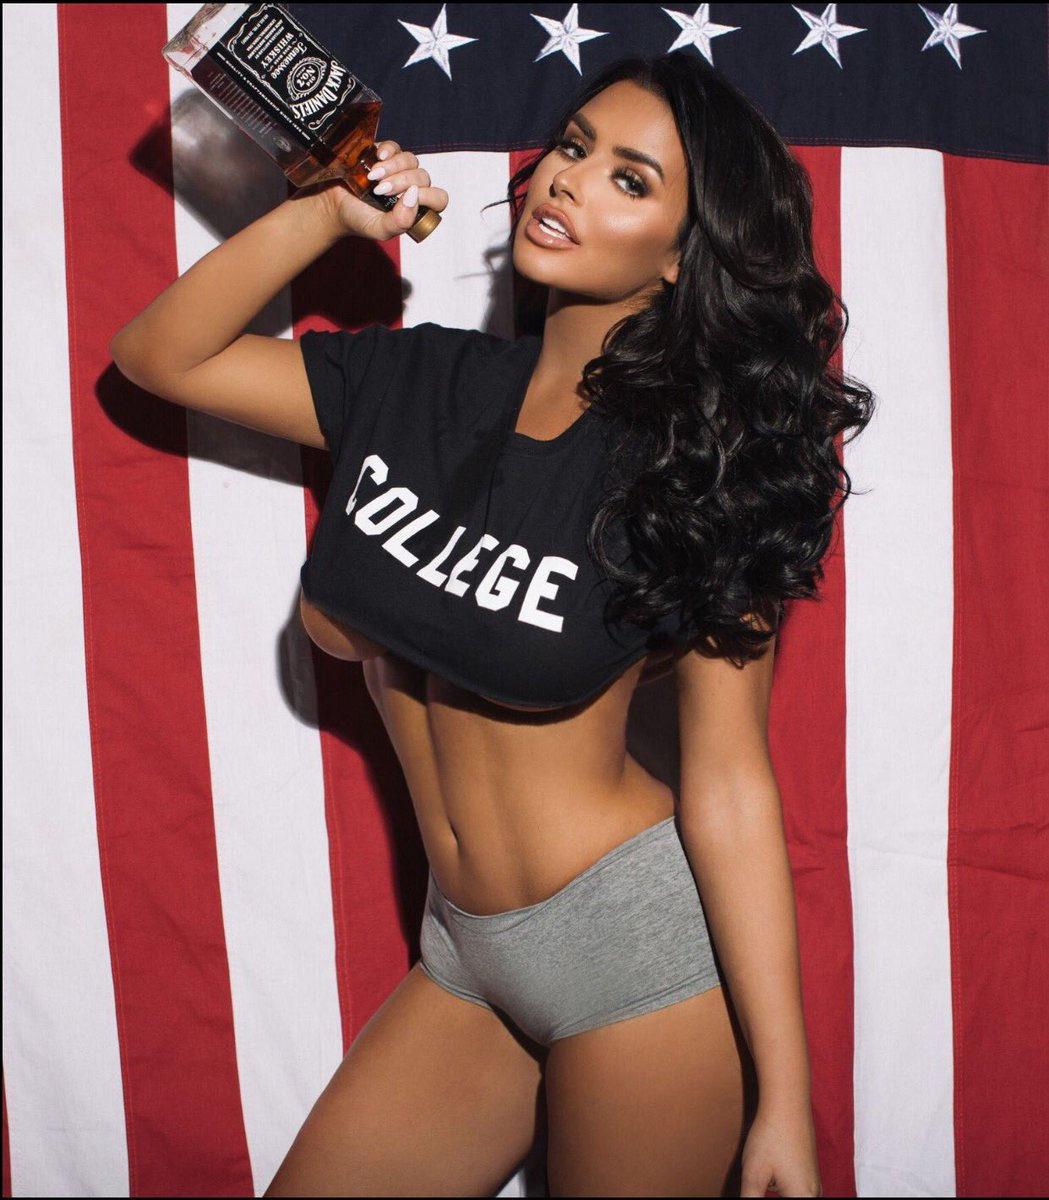 """abigail ratchford on twitter: """"animal house ; ) 🇺🇸🍺 all new merch"""